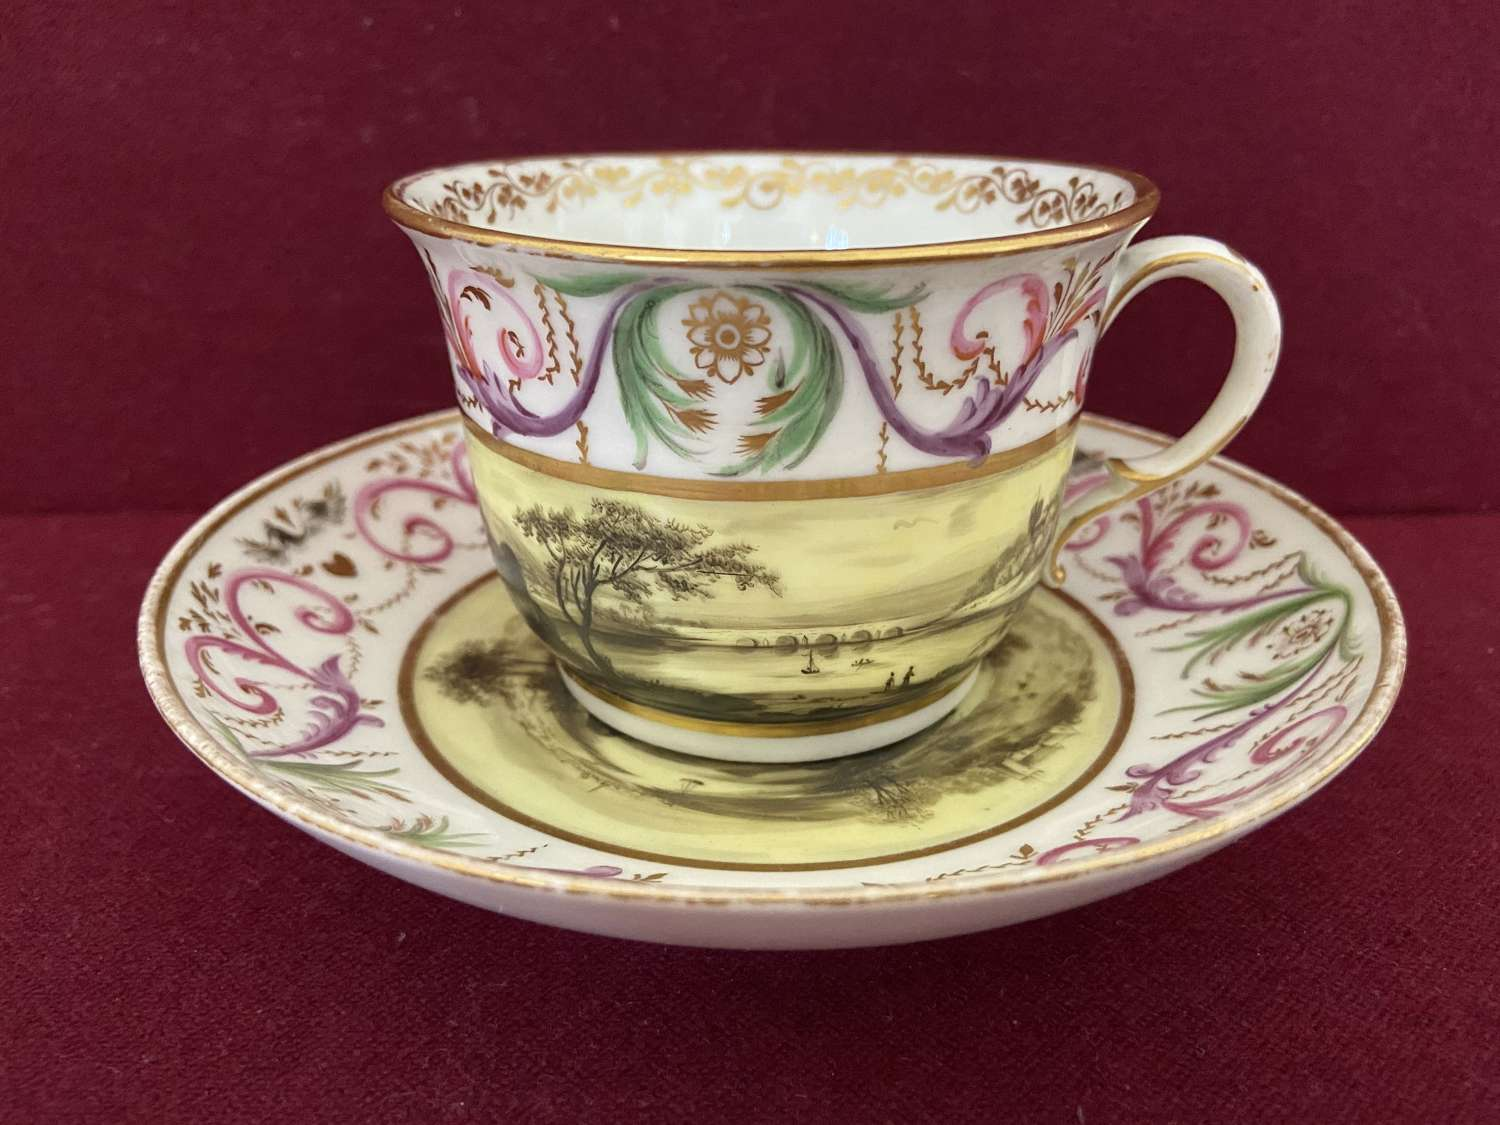 A very rare Mansfield decorated Breakfast cup and saucer c.1799-1803